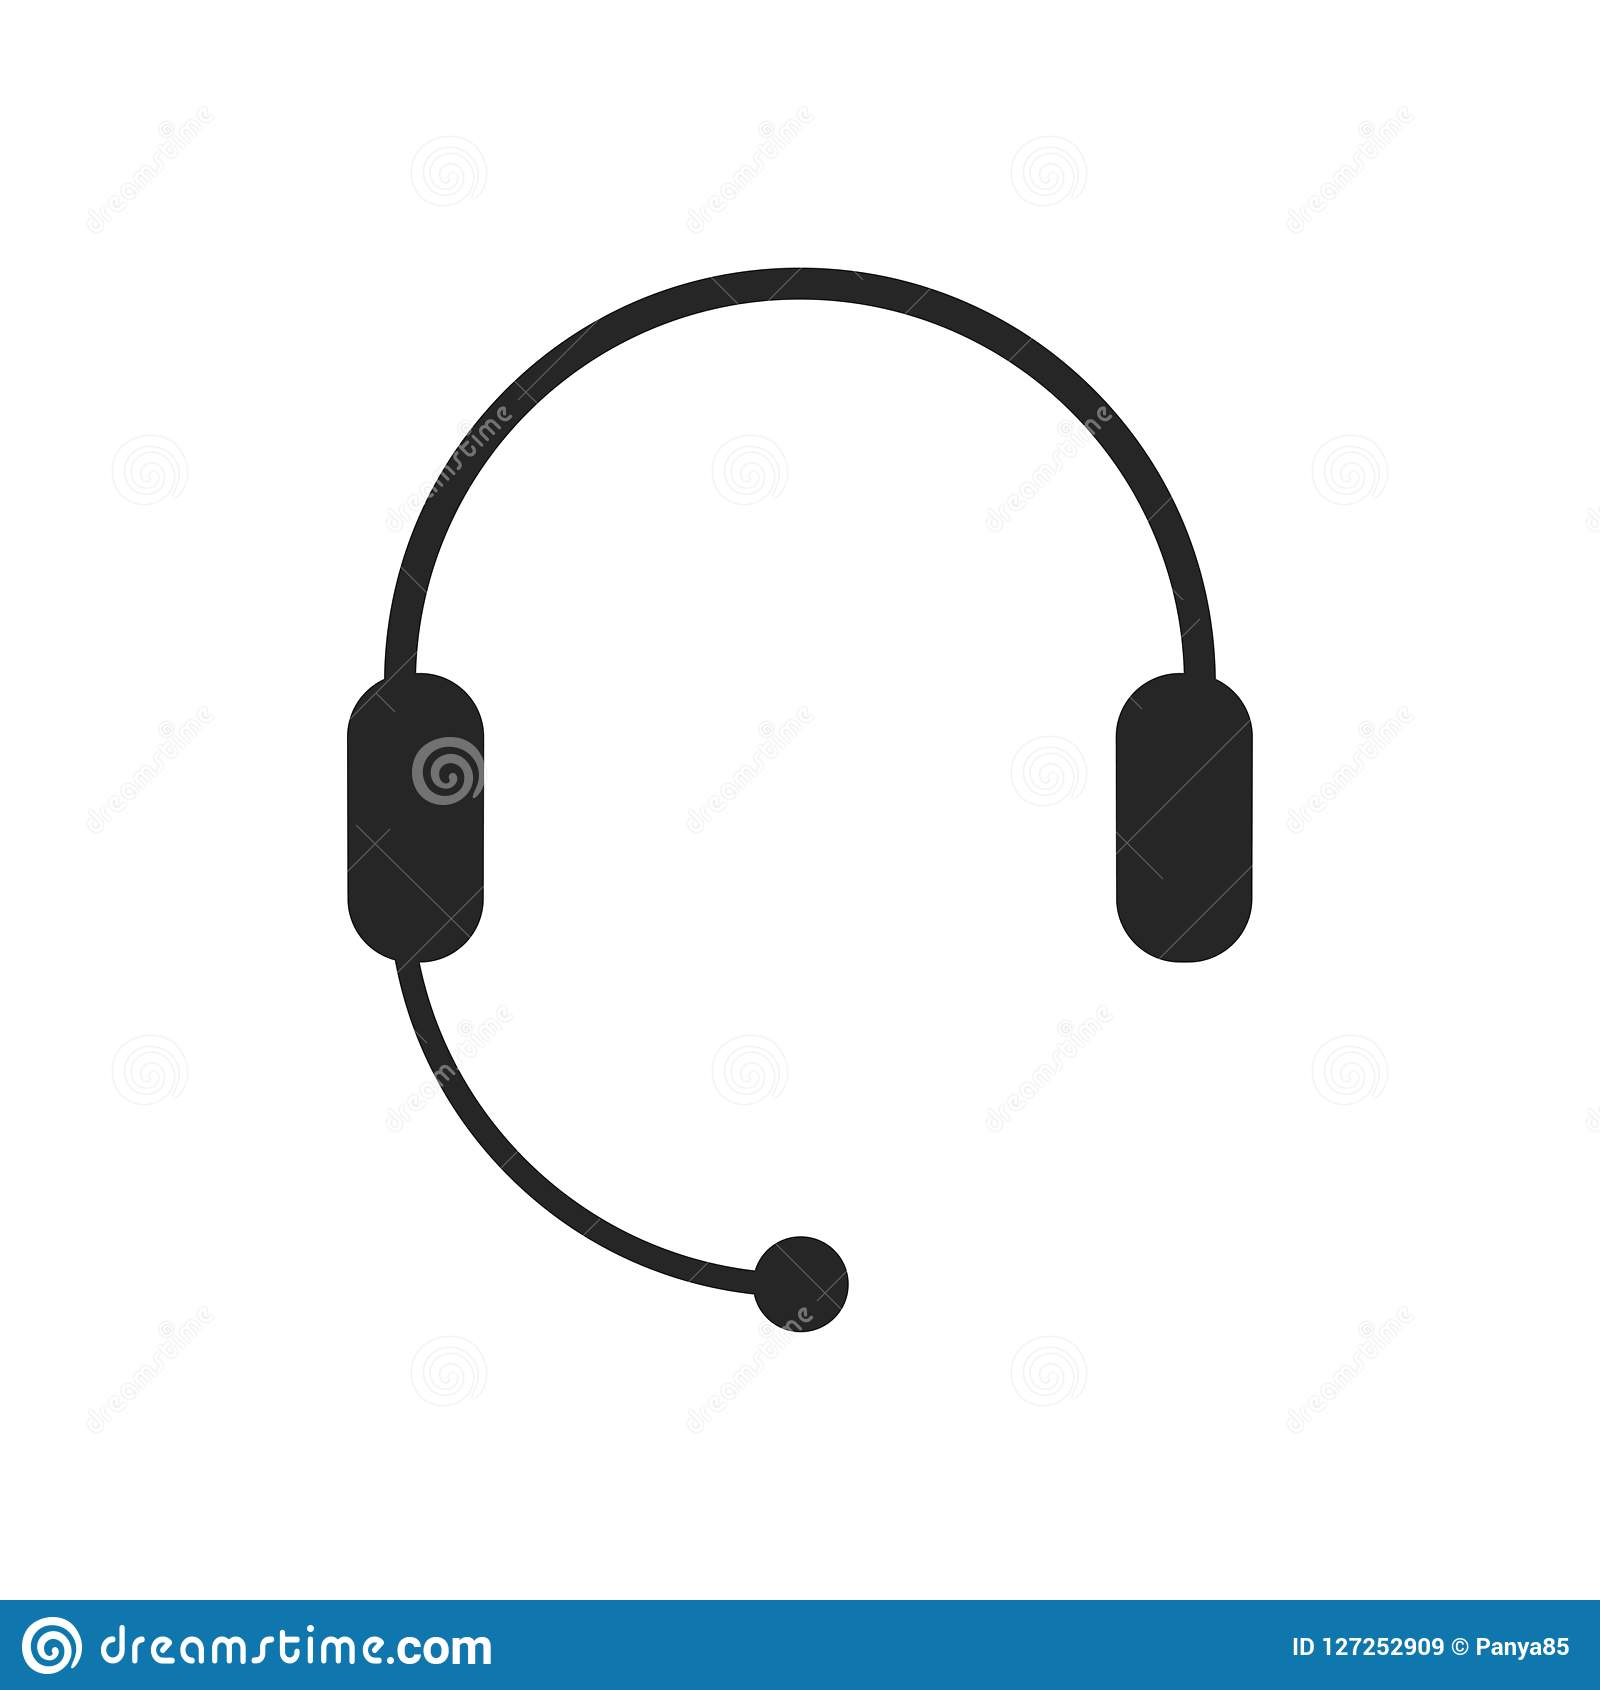 Headphones with microphone, headset icon. Support, Call center, Customer service symbol. Chat sign